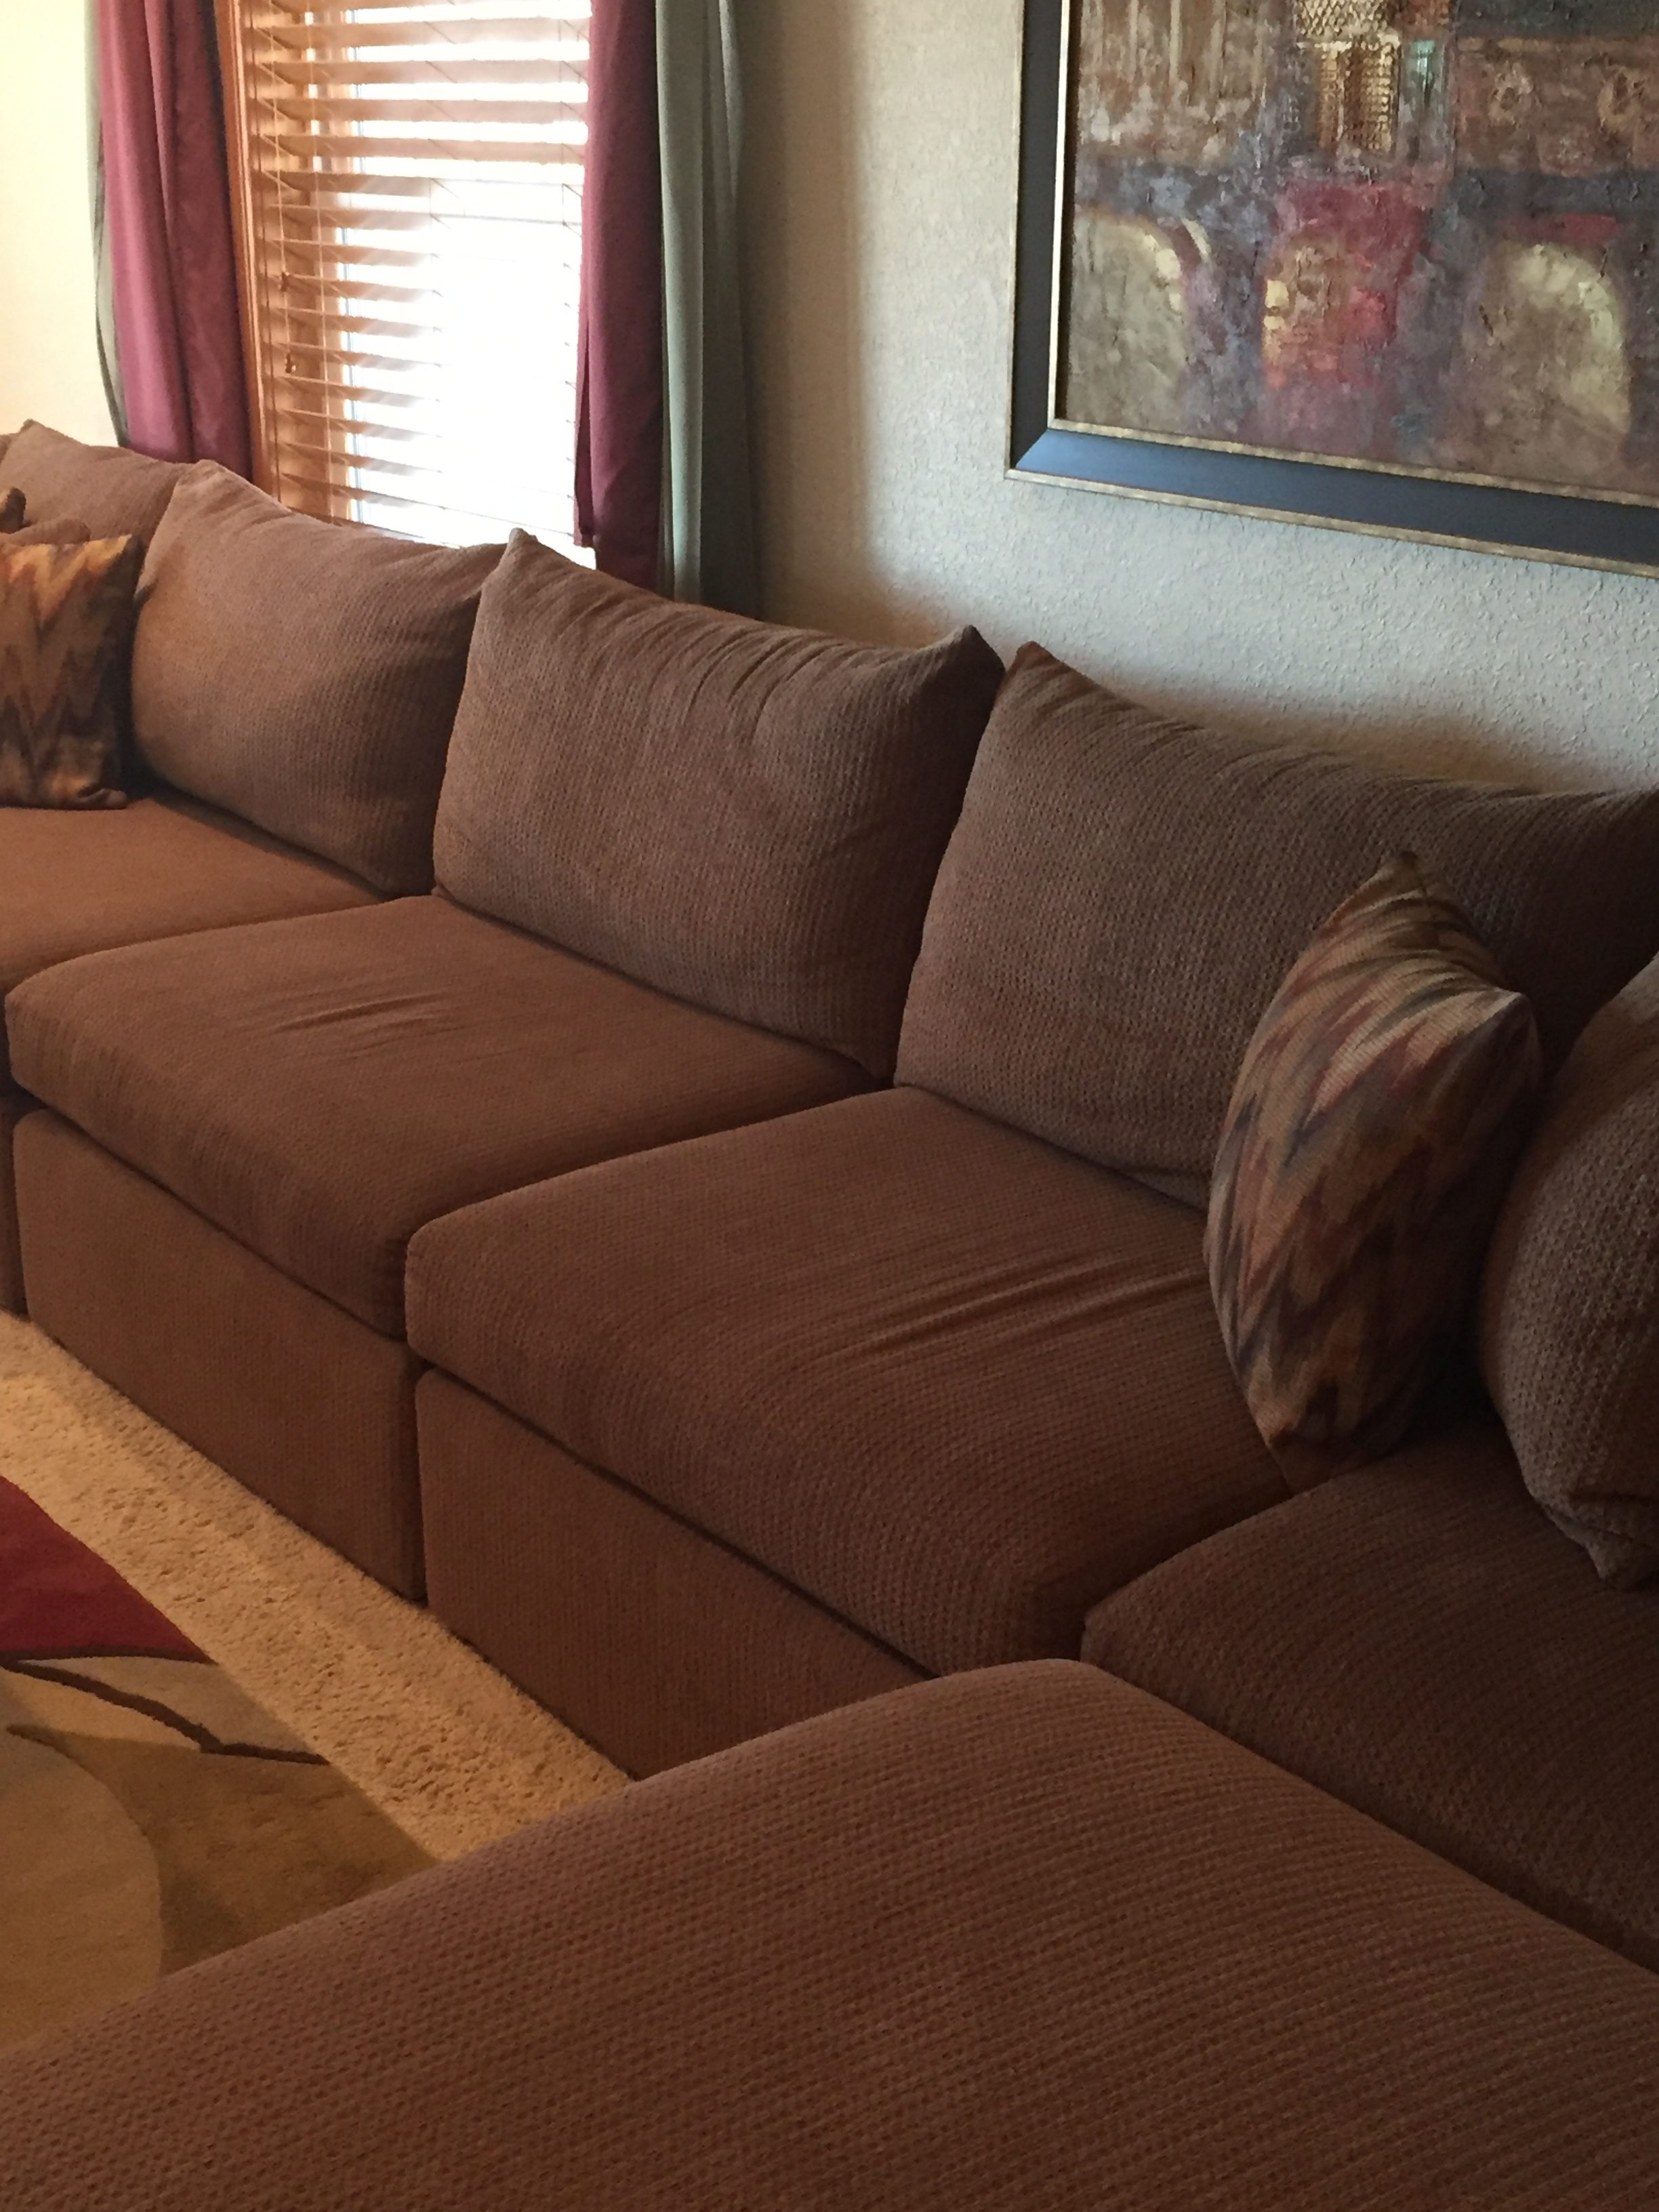 sofas etc towson md small living rooms choosing a comfortable sofa furniture for room